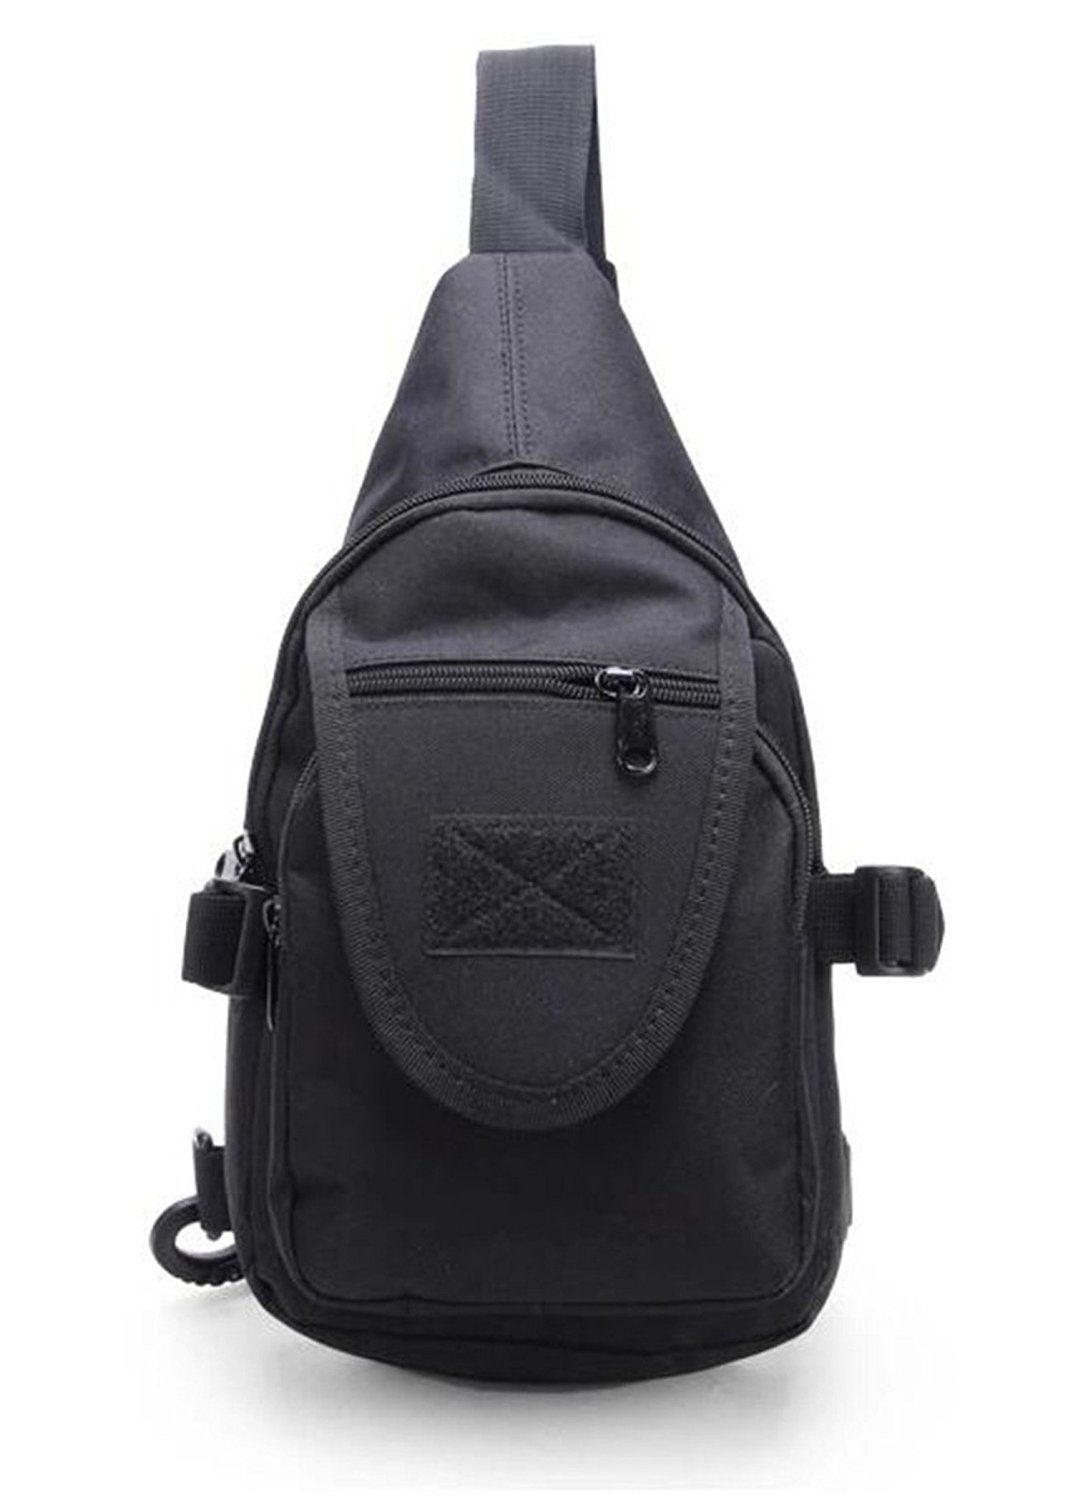 f4646b2e02d2 Cheap Cross Body Backpack Bags, find Cross Body Backpack Bags deals ...